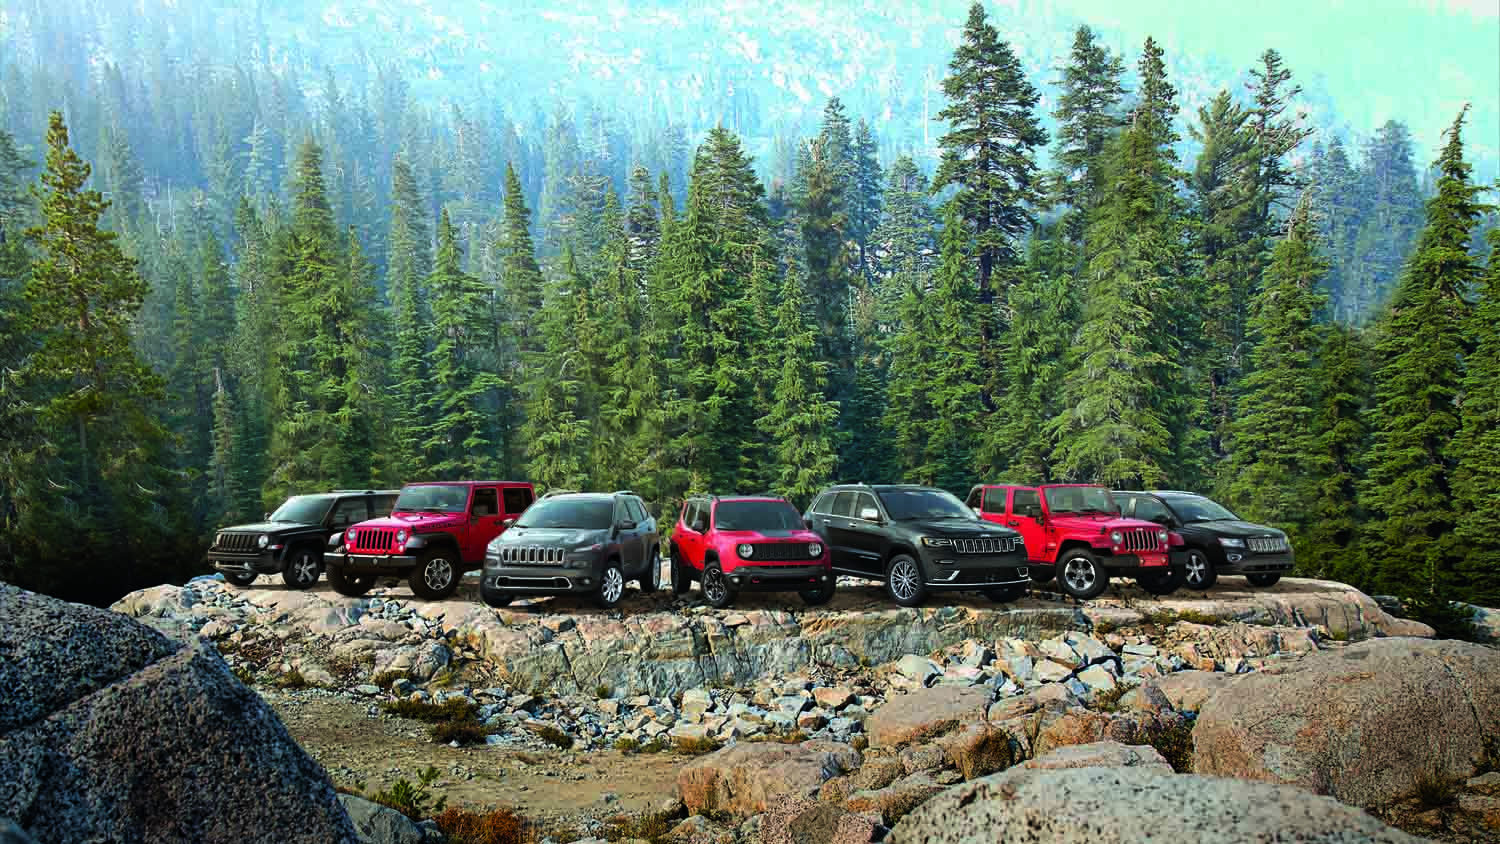 SUVs available in Cobleskill, NY at Cobleskill Chrysler Dodge Jeep Ram